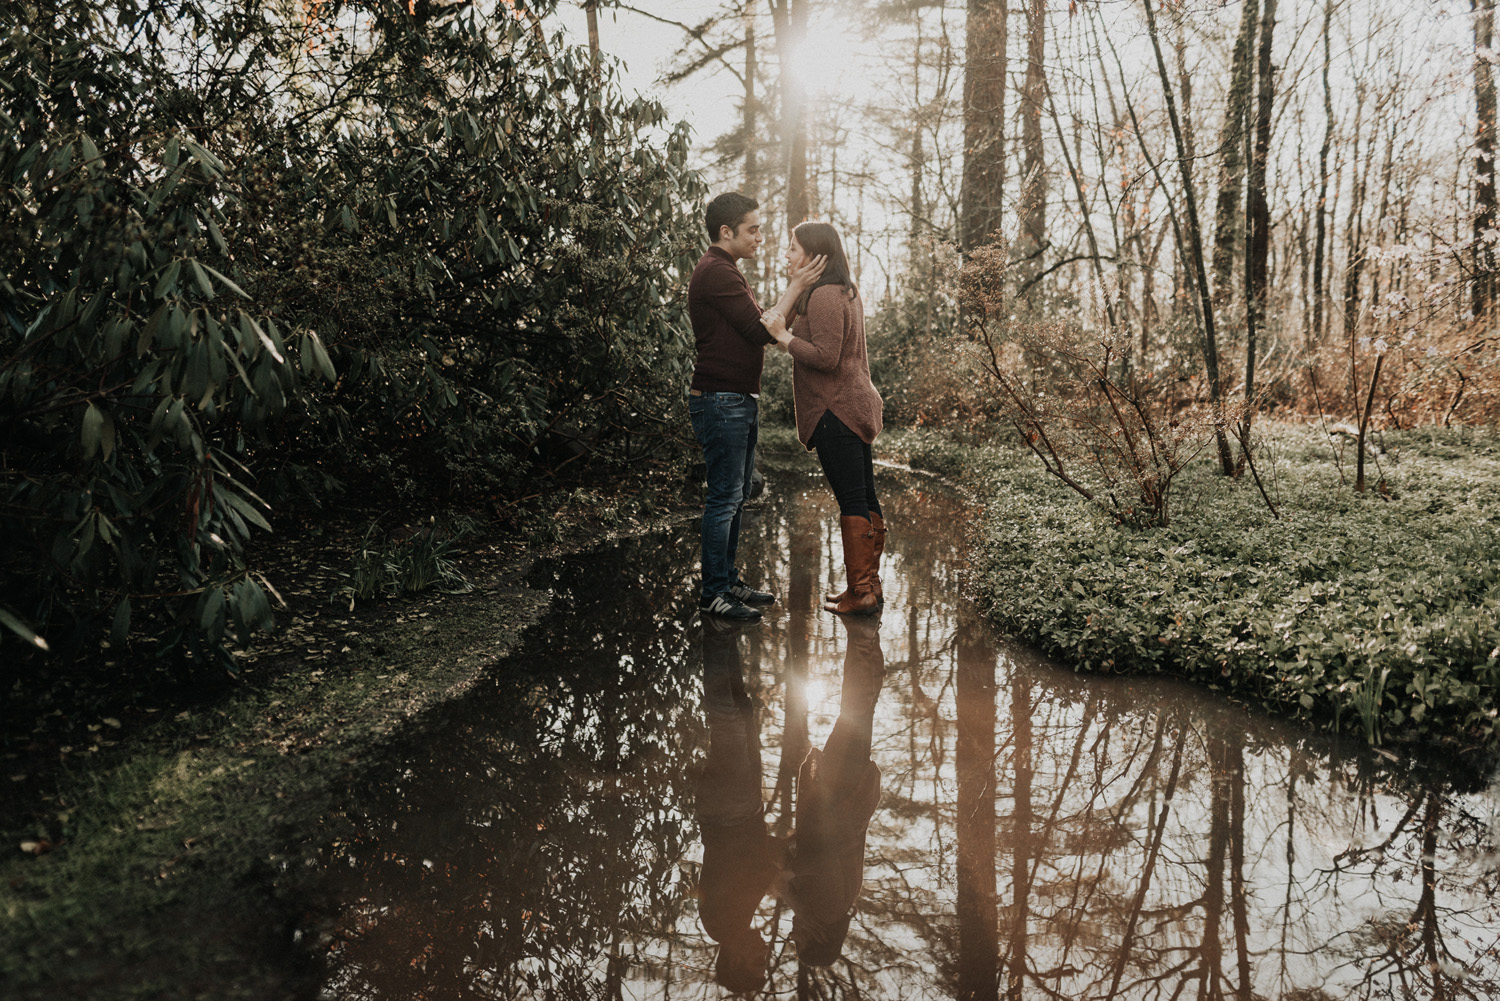 KyleWillisPhoto-Kyle-Willis-Photography-Sayen-Gardens-Hamilton-New-Jersey-Engagement-Couples-Photographer-Mercer-County